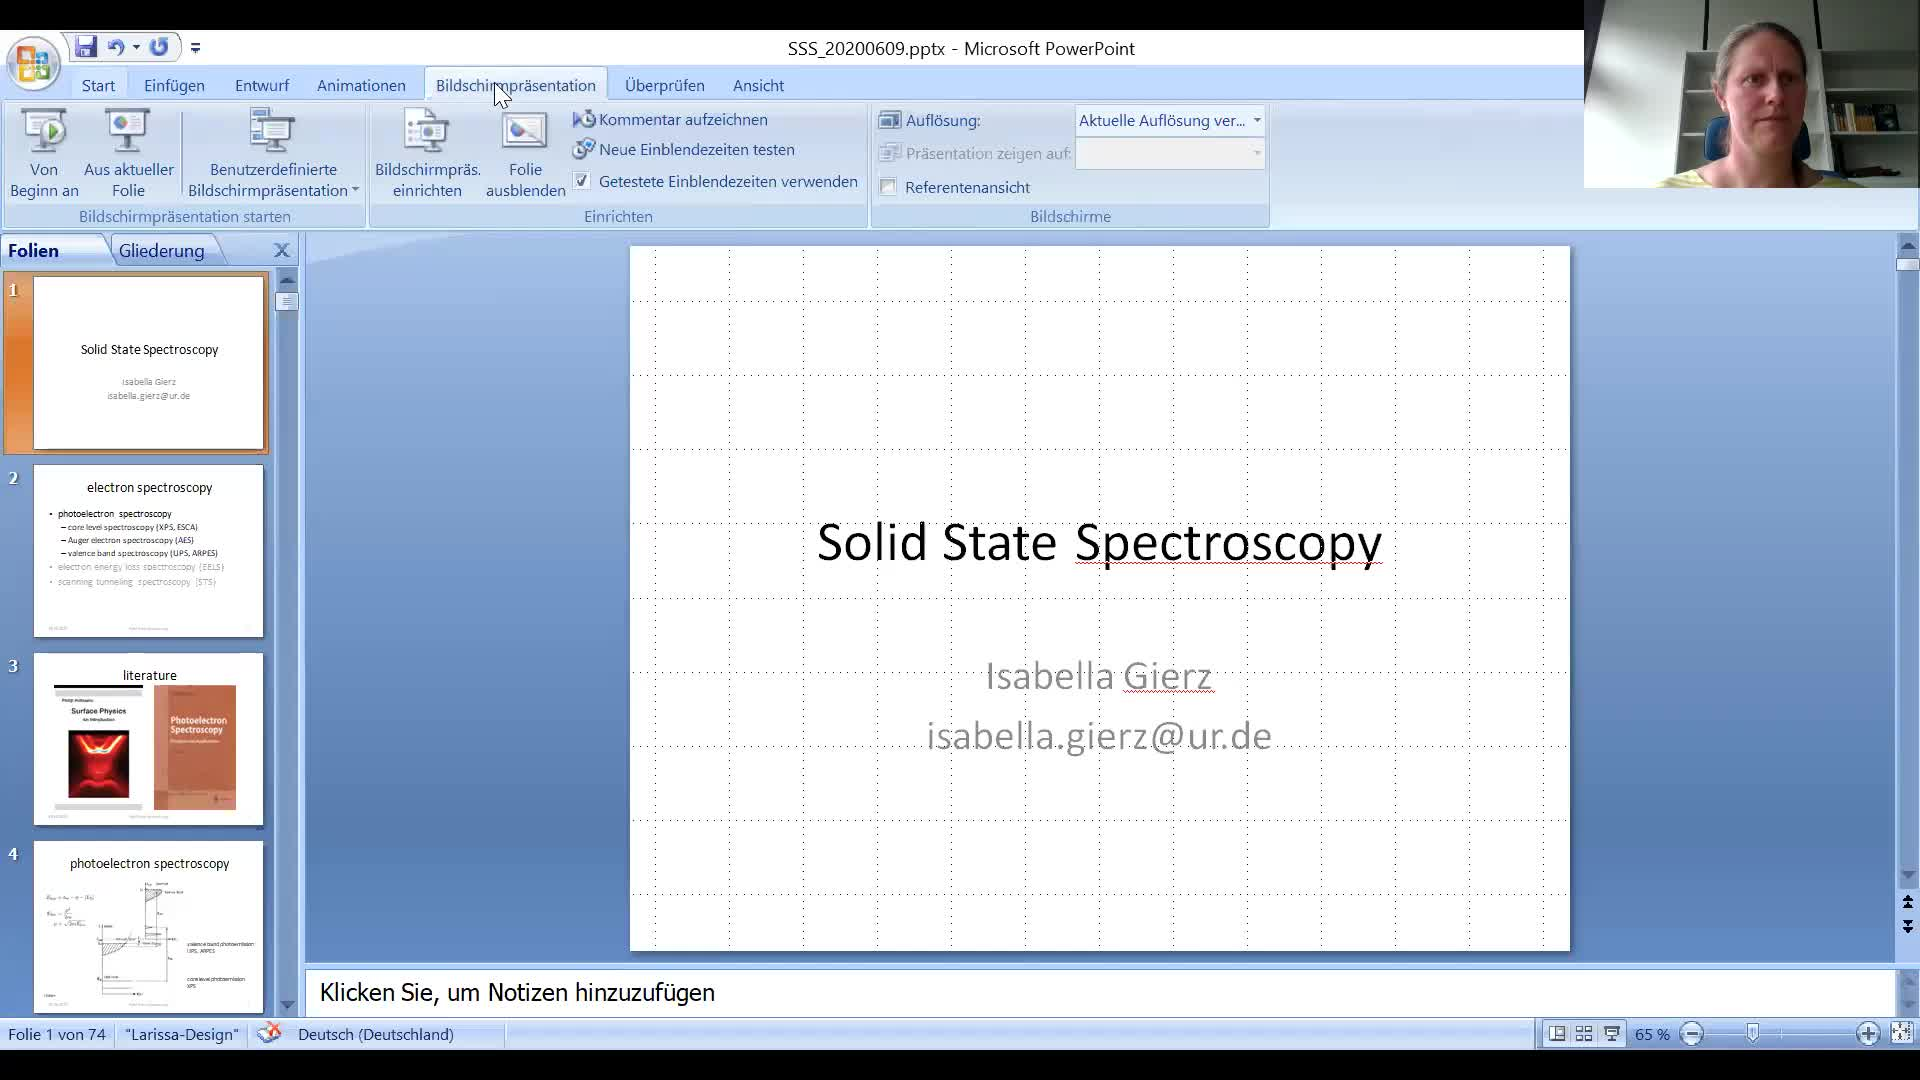 SSS lecture 20200609 video